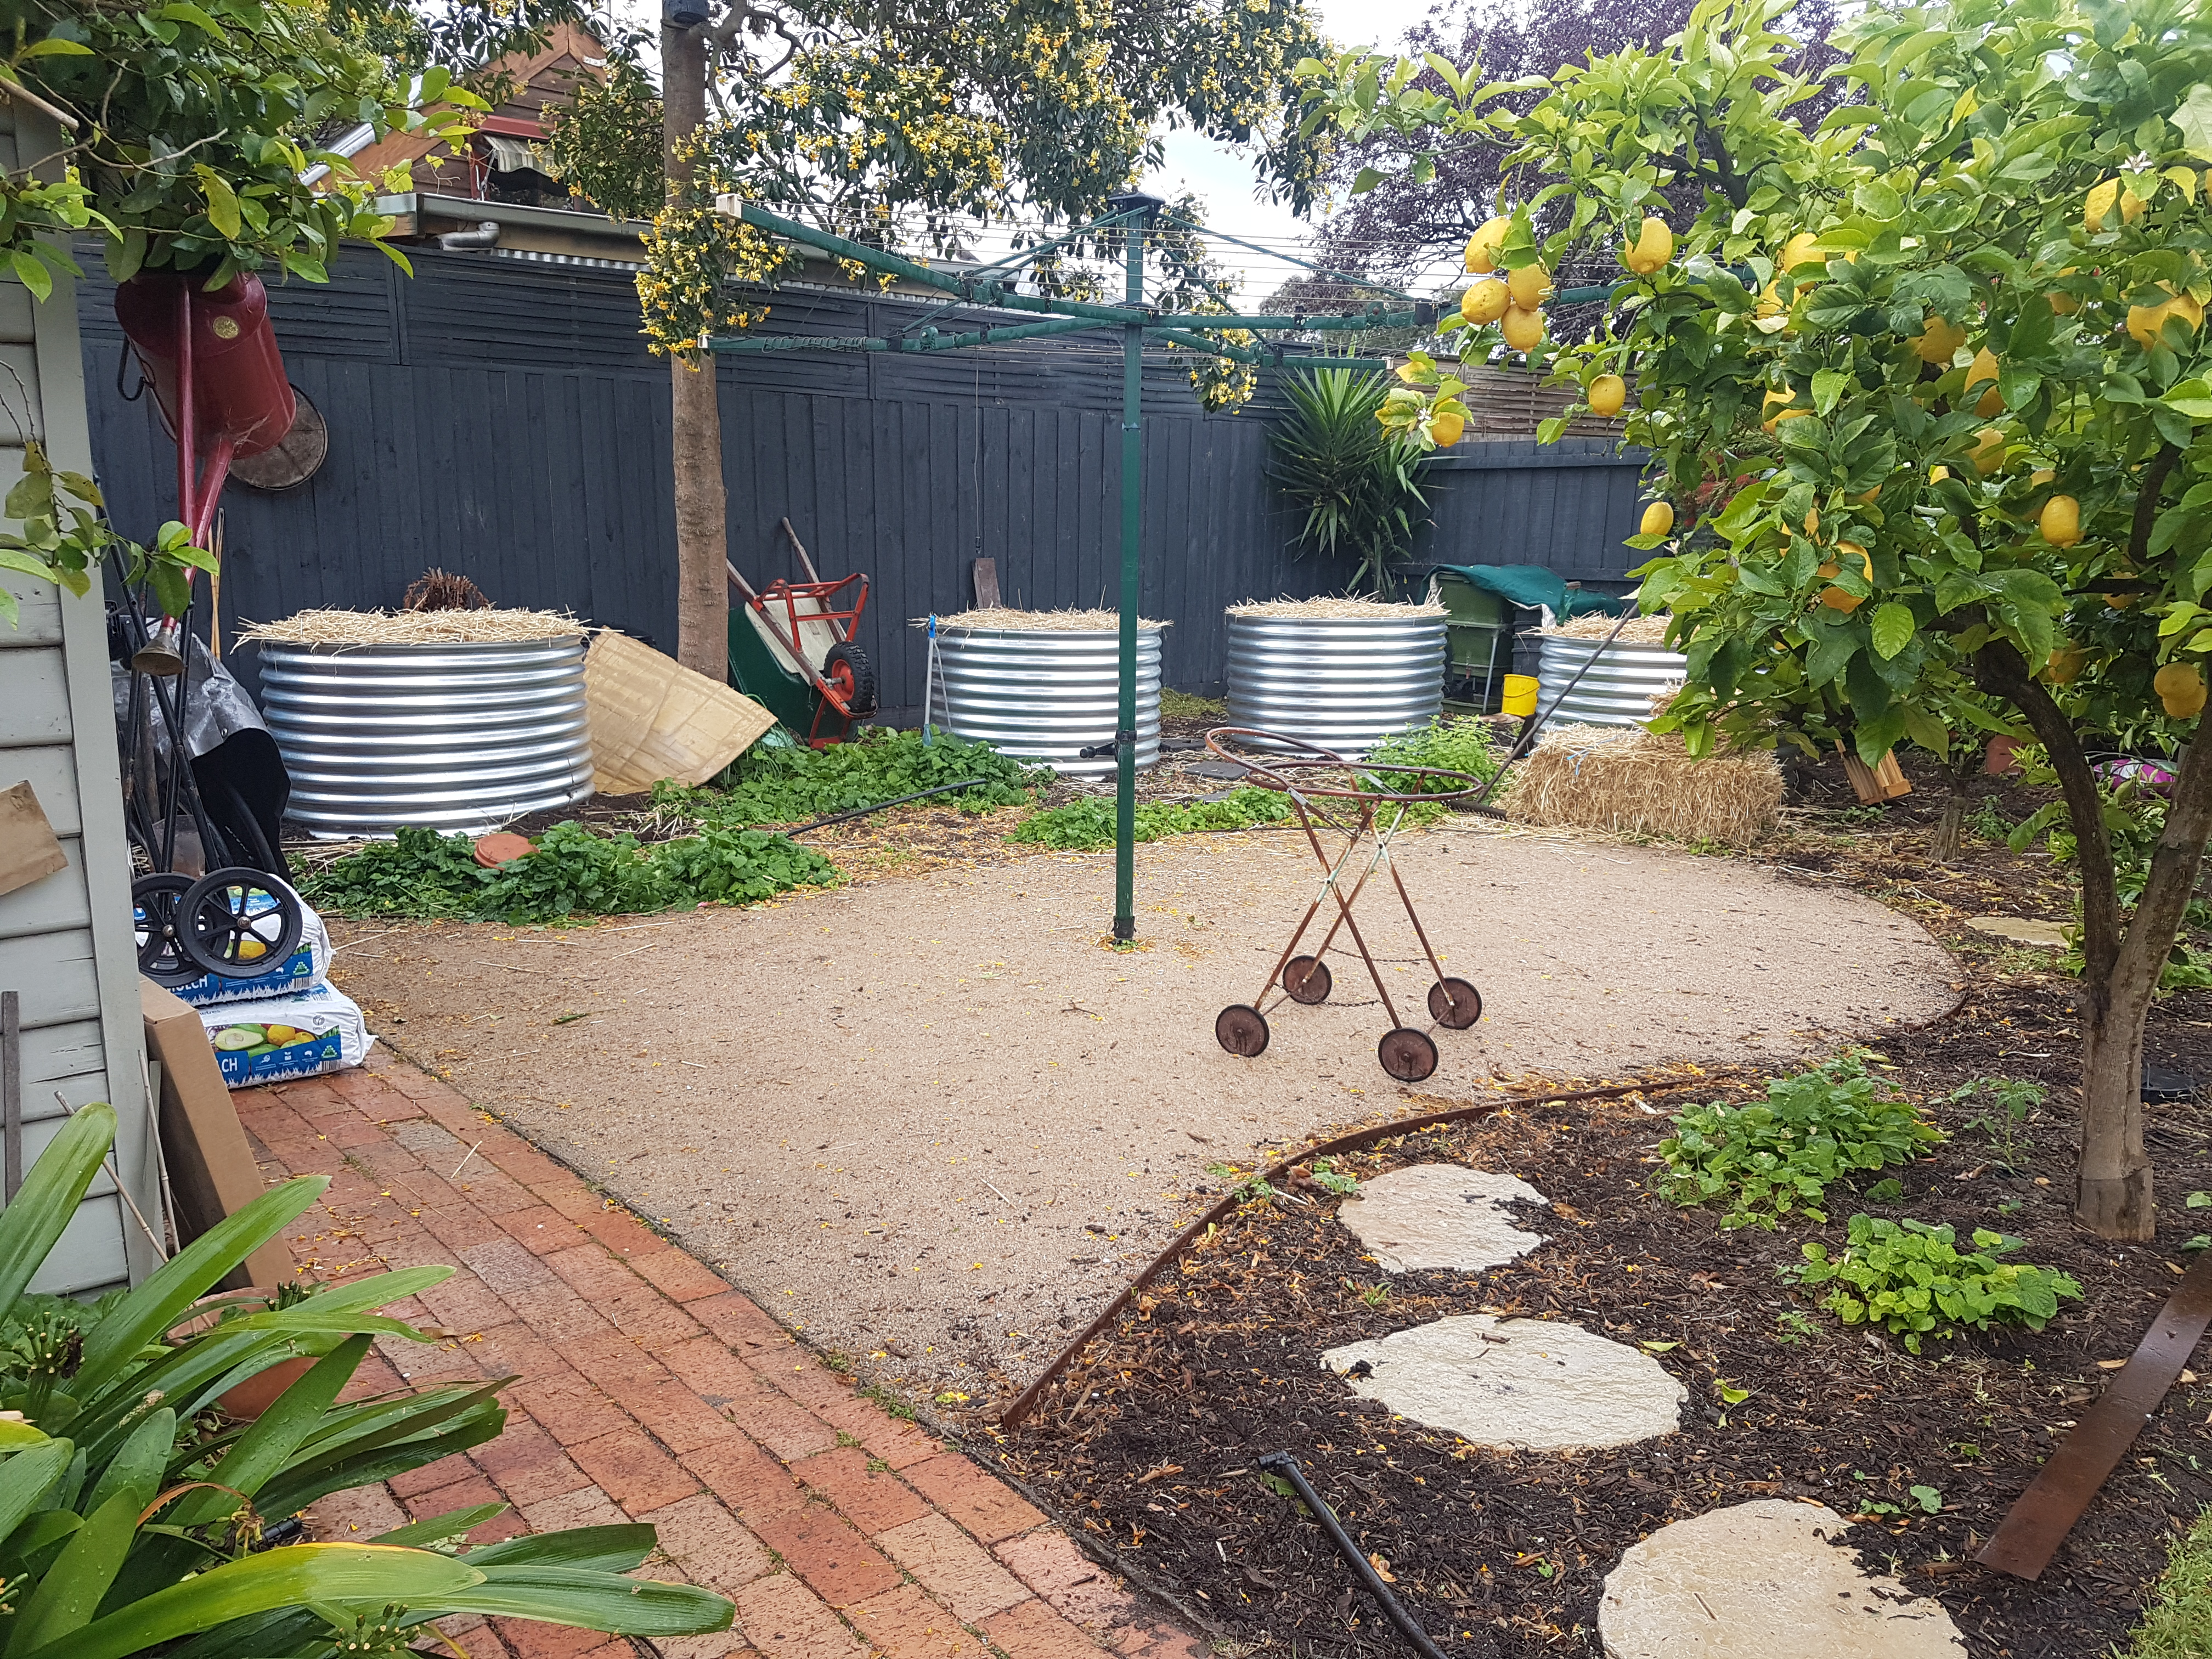 vegie beds, compacted granitic sand, no lawn